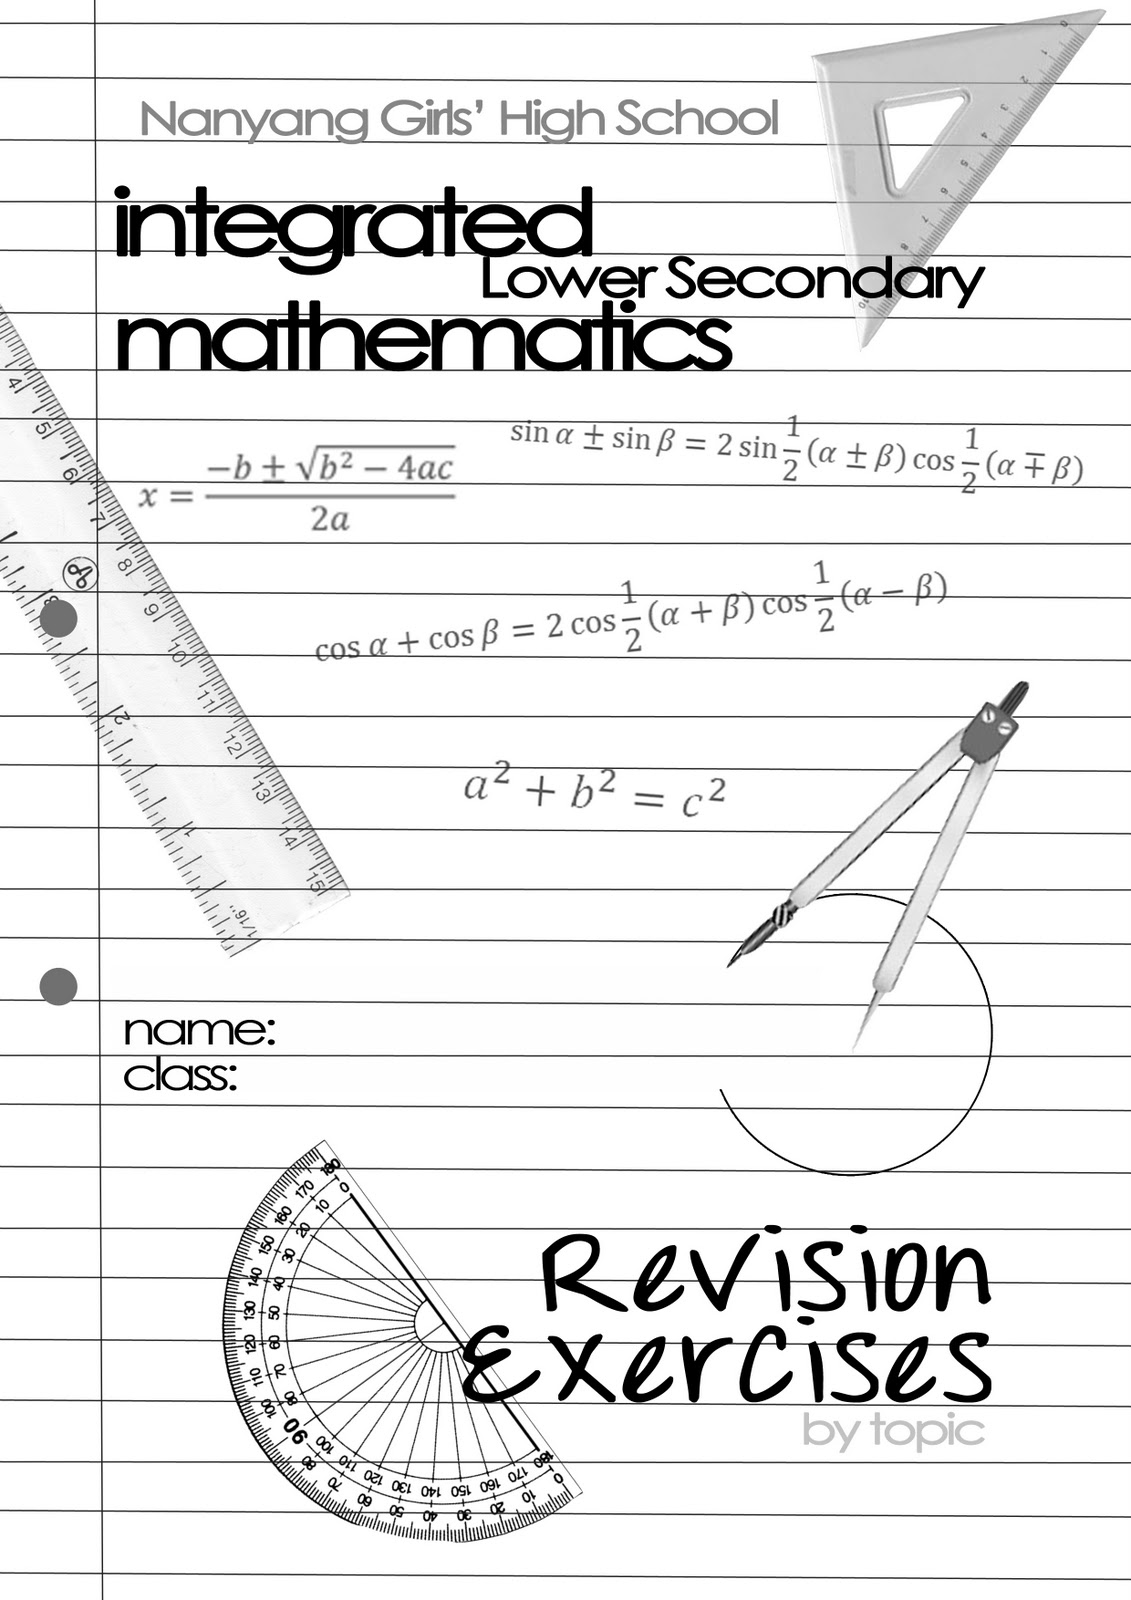 Maths Book Cover Ideas ~ Visualistic math revision booklet cover design